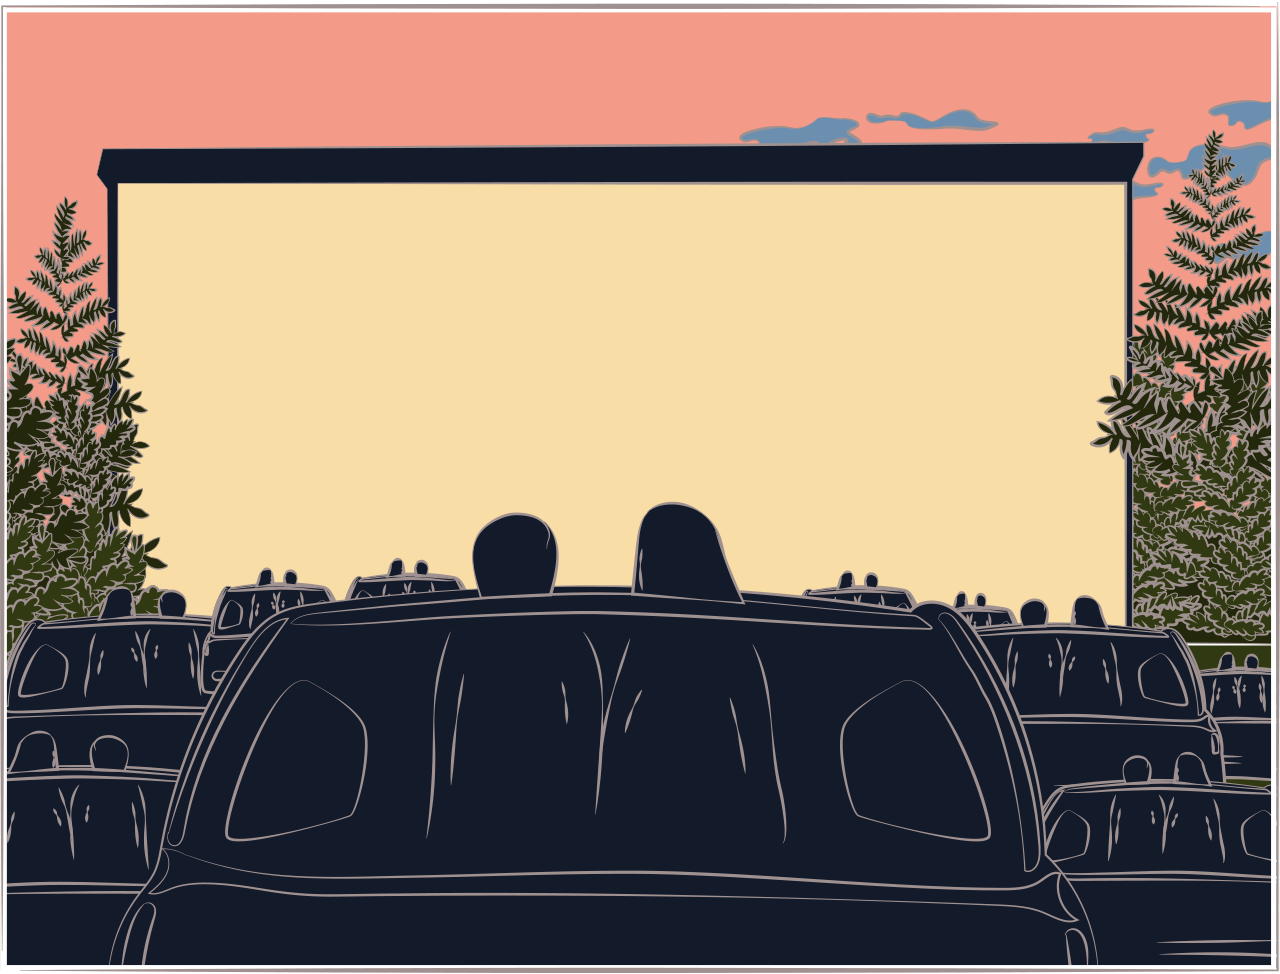 Illustration of a drive-in cinema